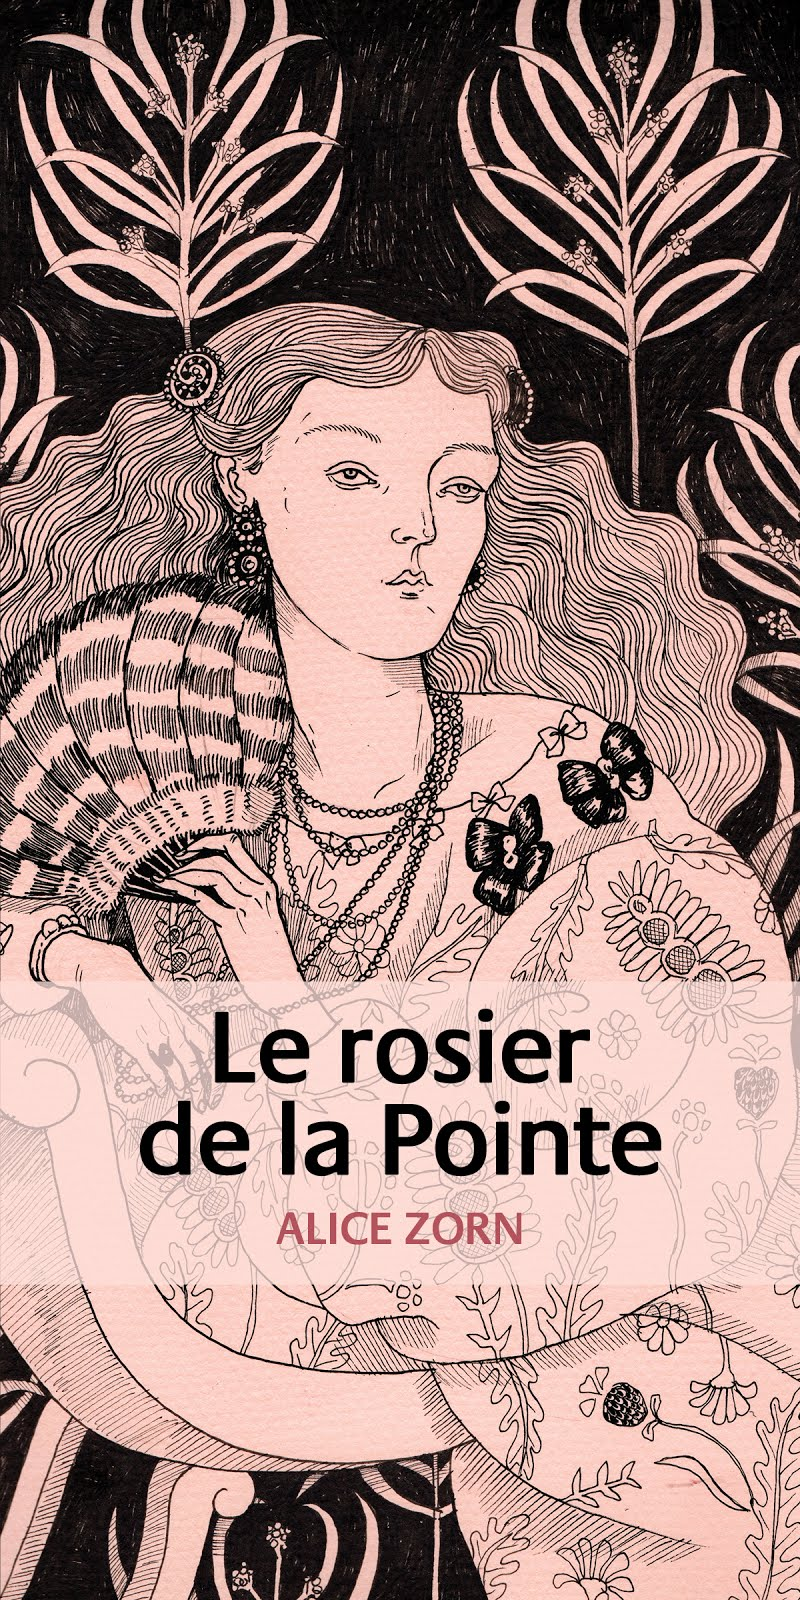 Le rosier de la Pointe, a novel